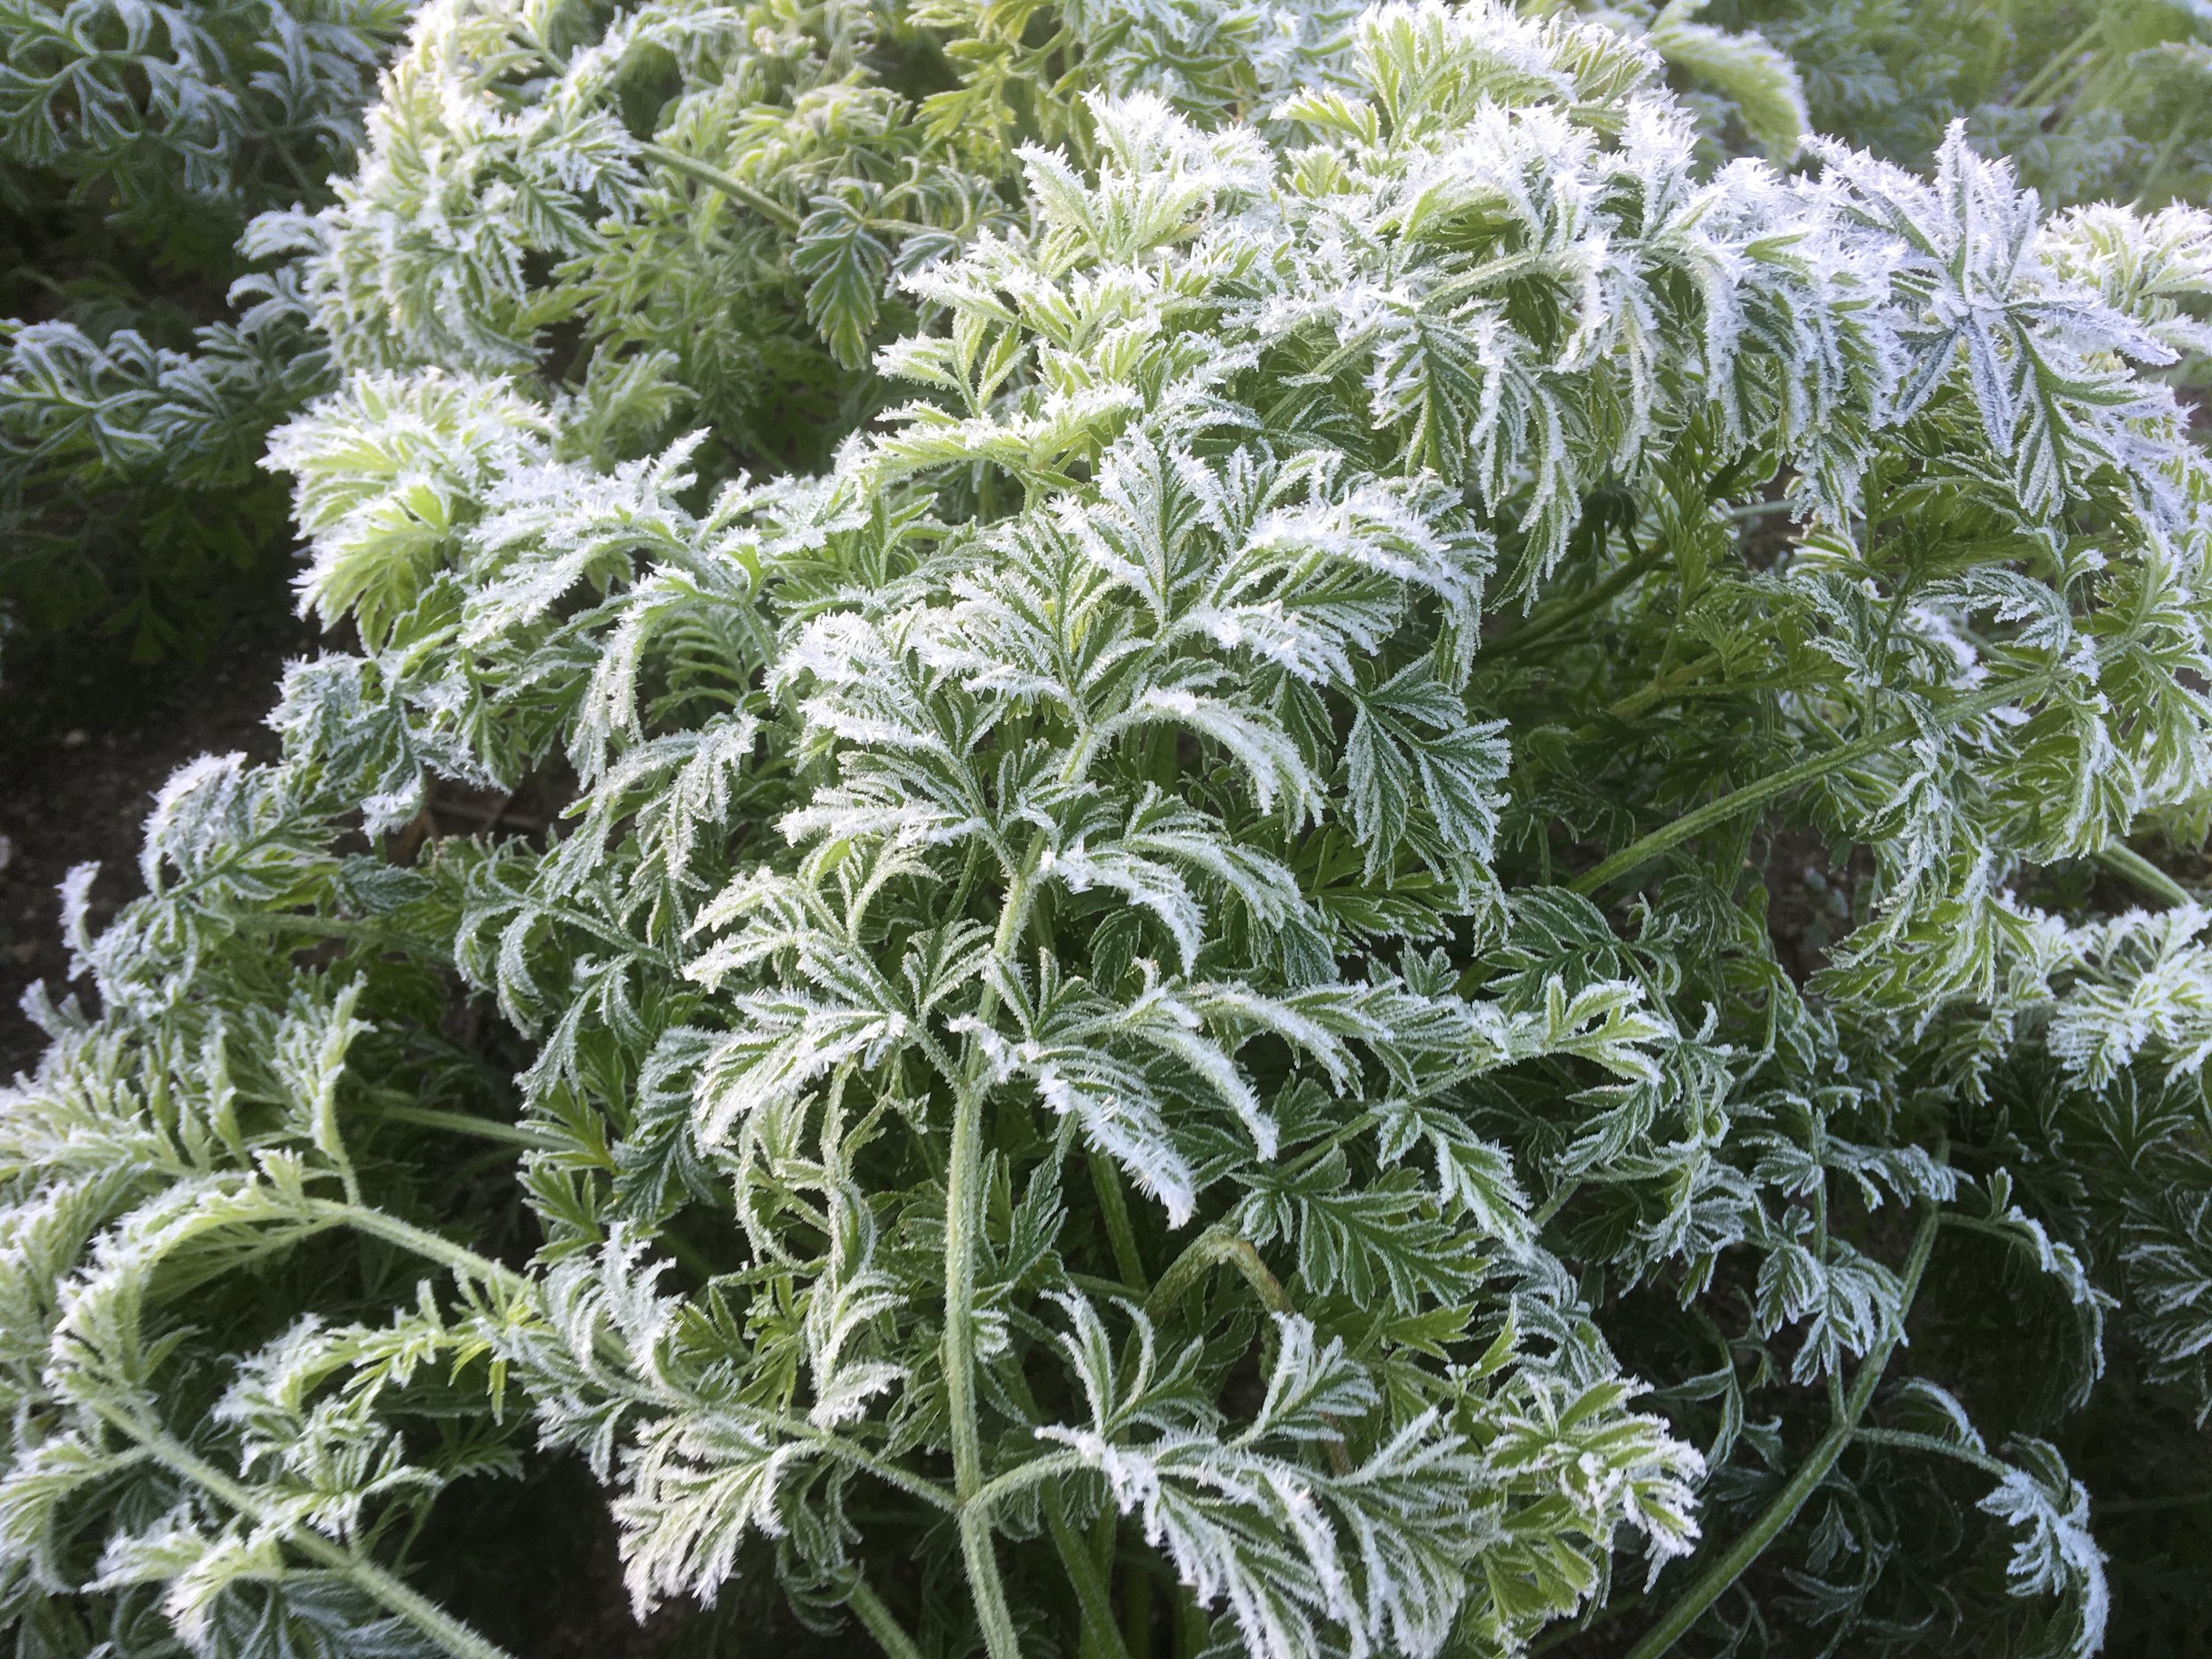 Frosty carrot tops mean sweet roots!